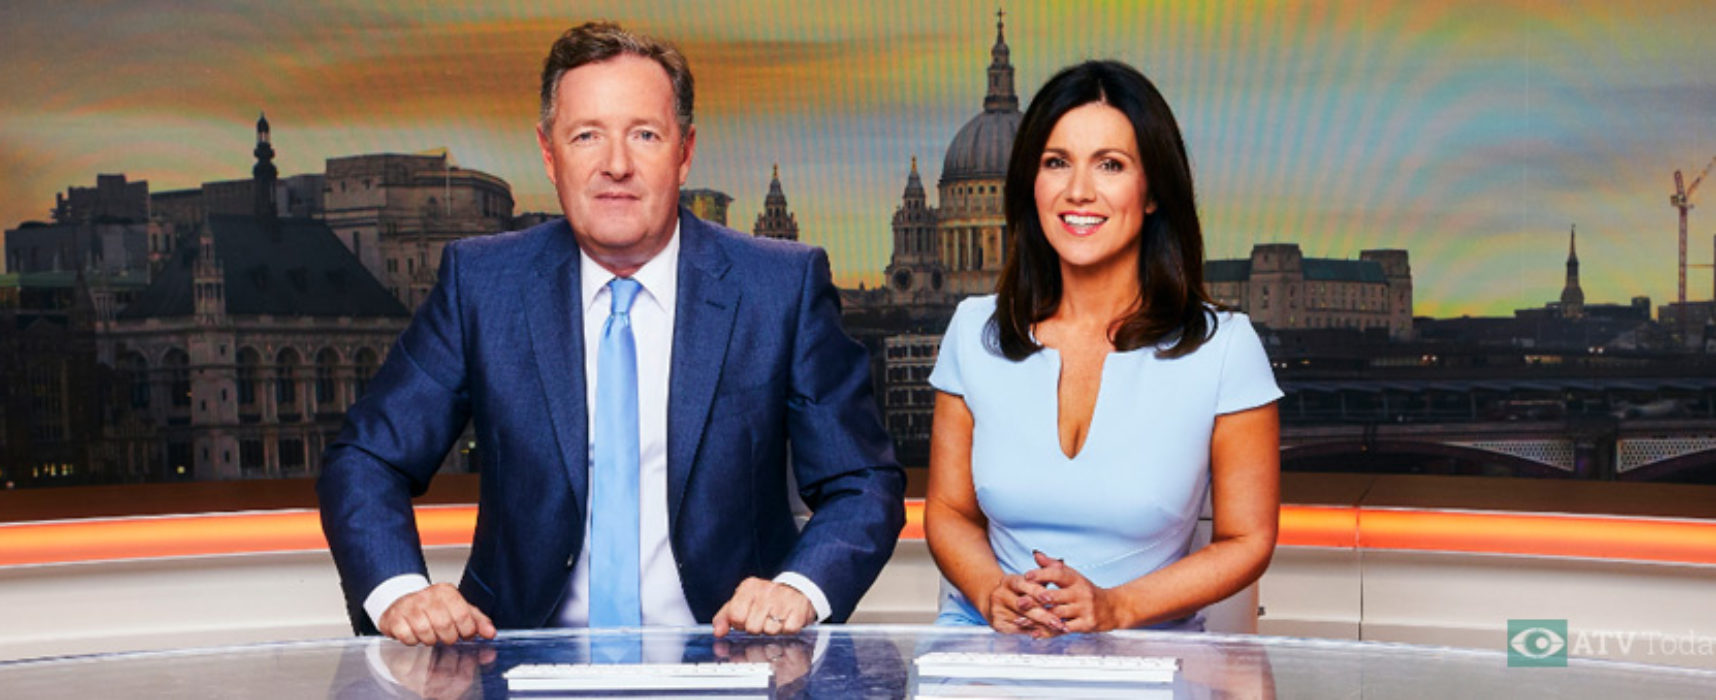 ITV News branding confuses Good Morning Britain viewers